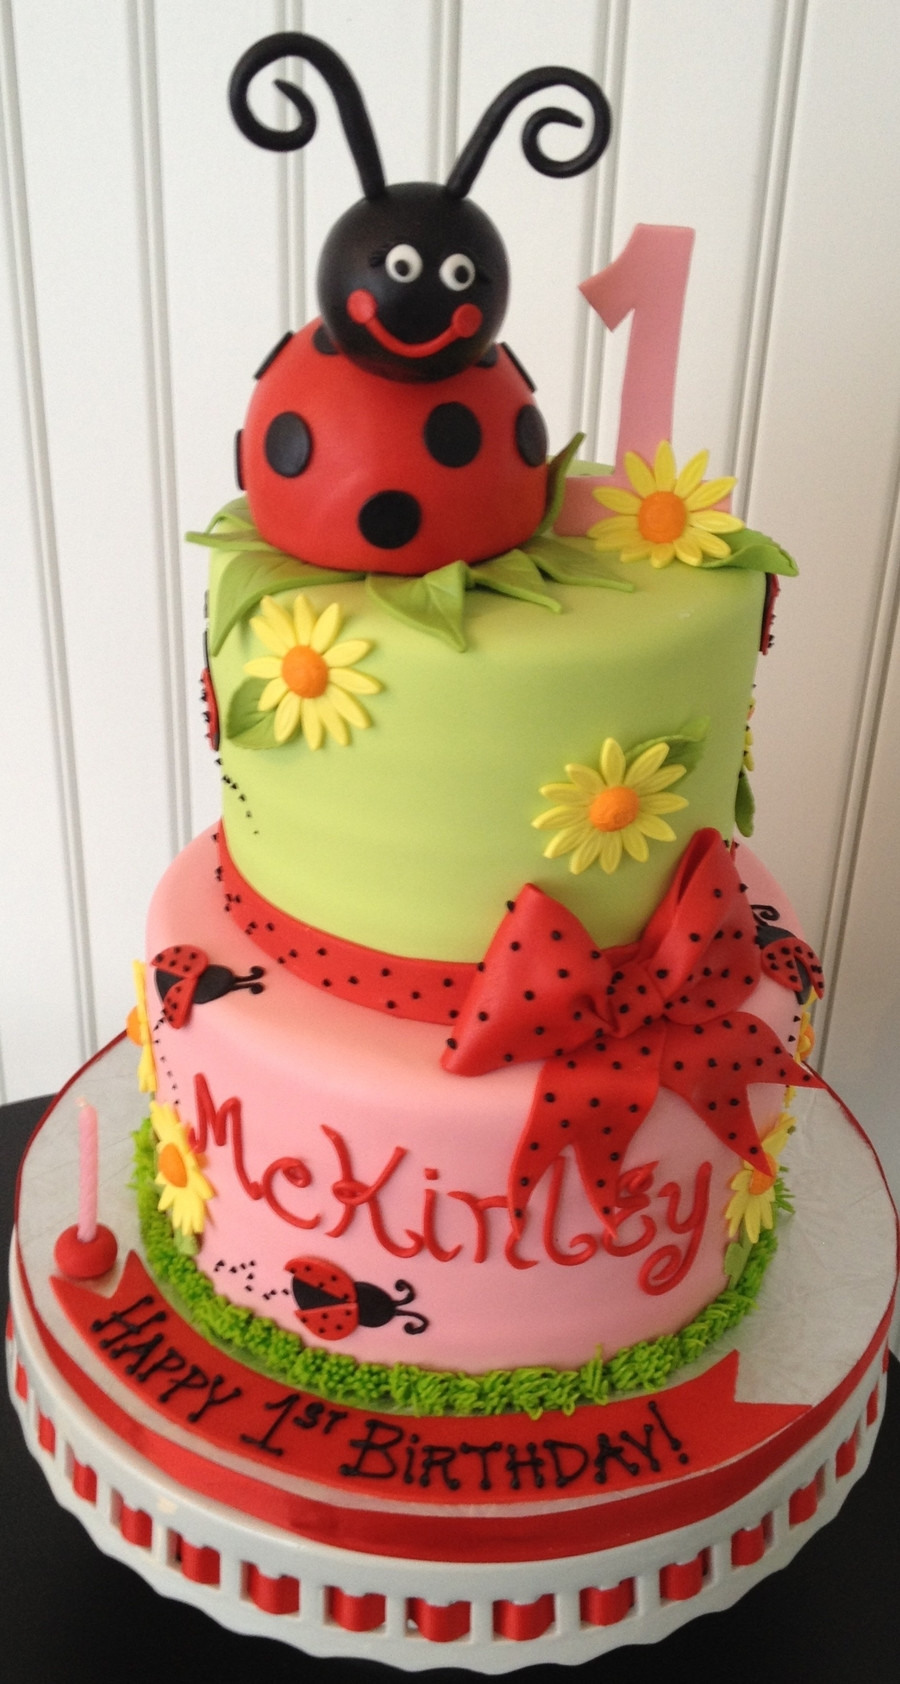 Best ideas about Ladybug Birthday Cake . Save or Pin Lady Bug 1St Birthday Cake CakeCentral Now.